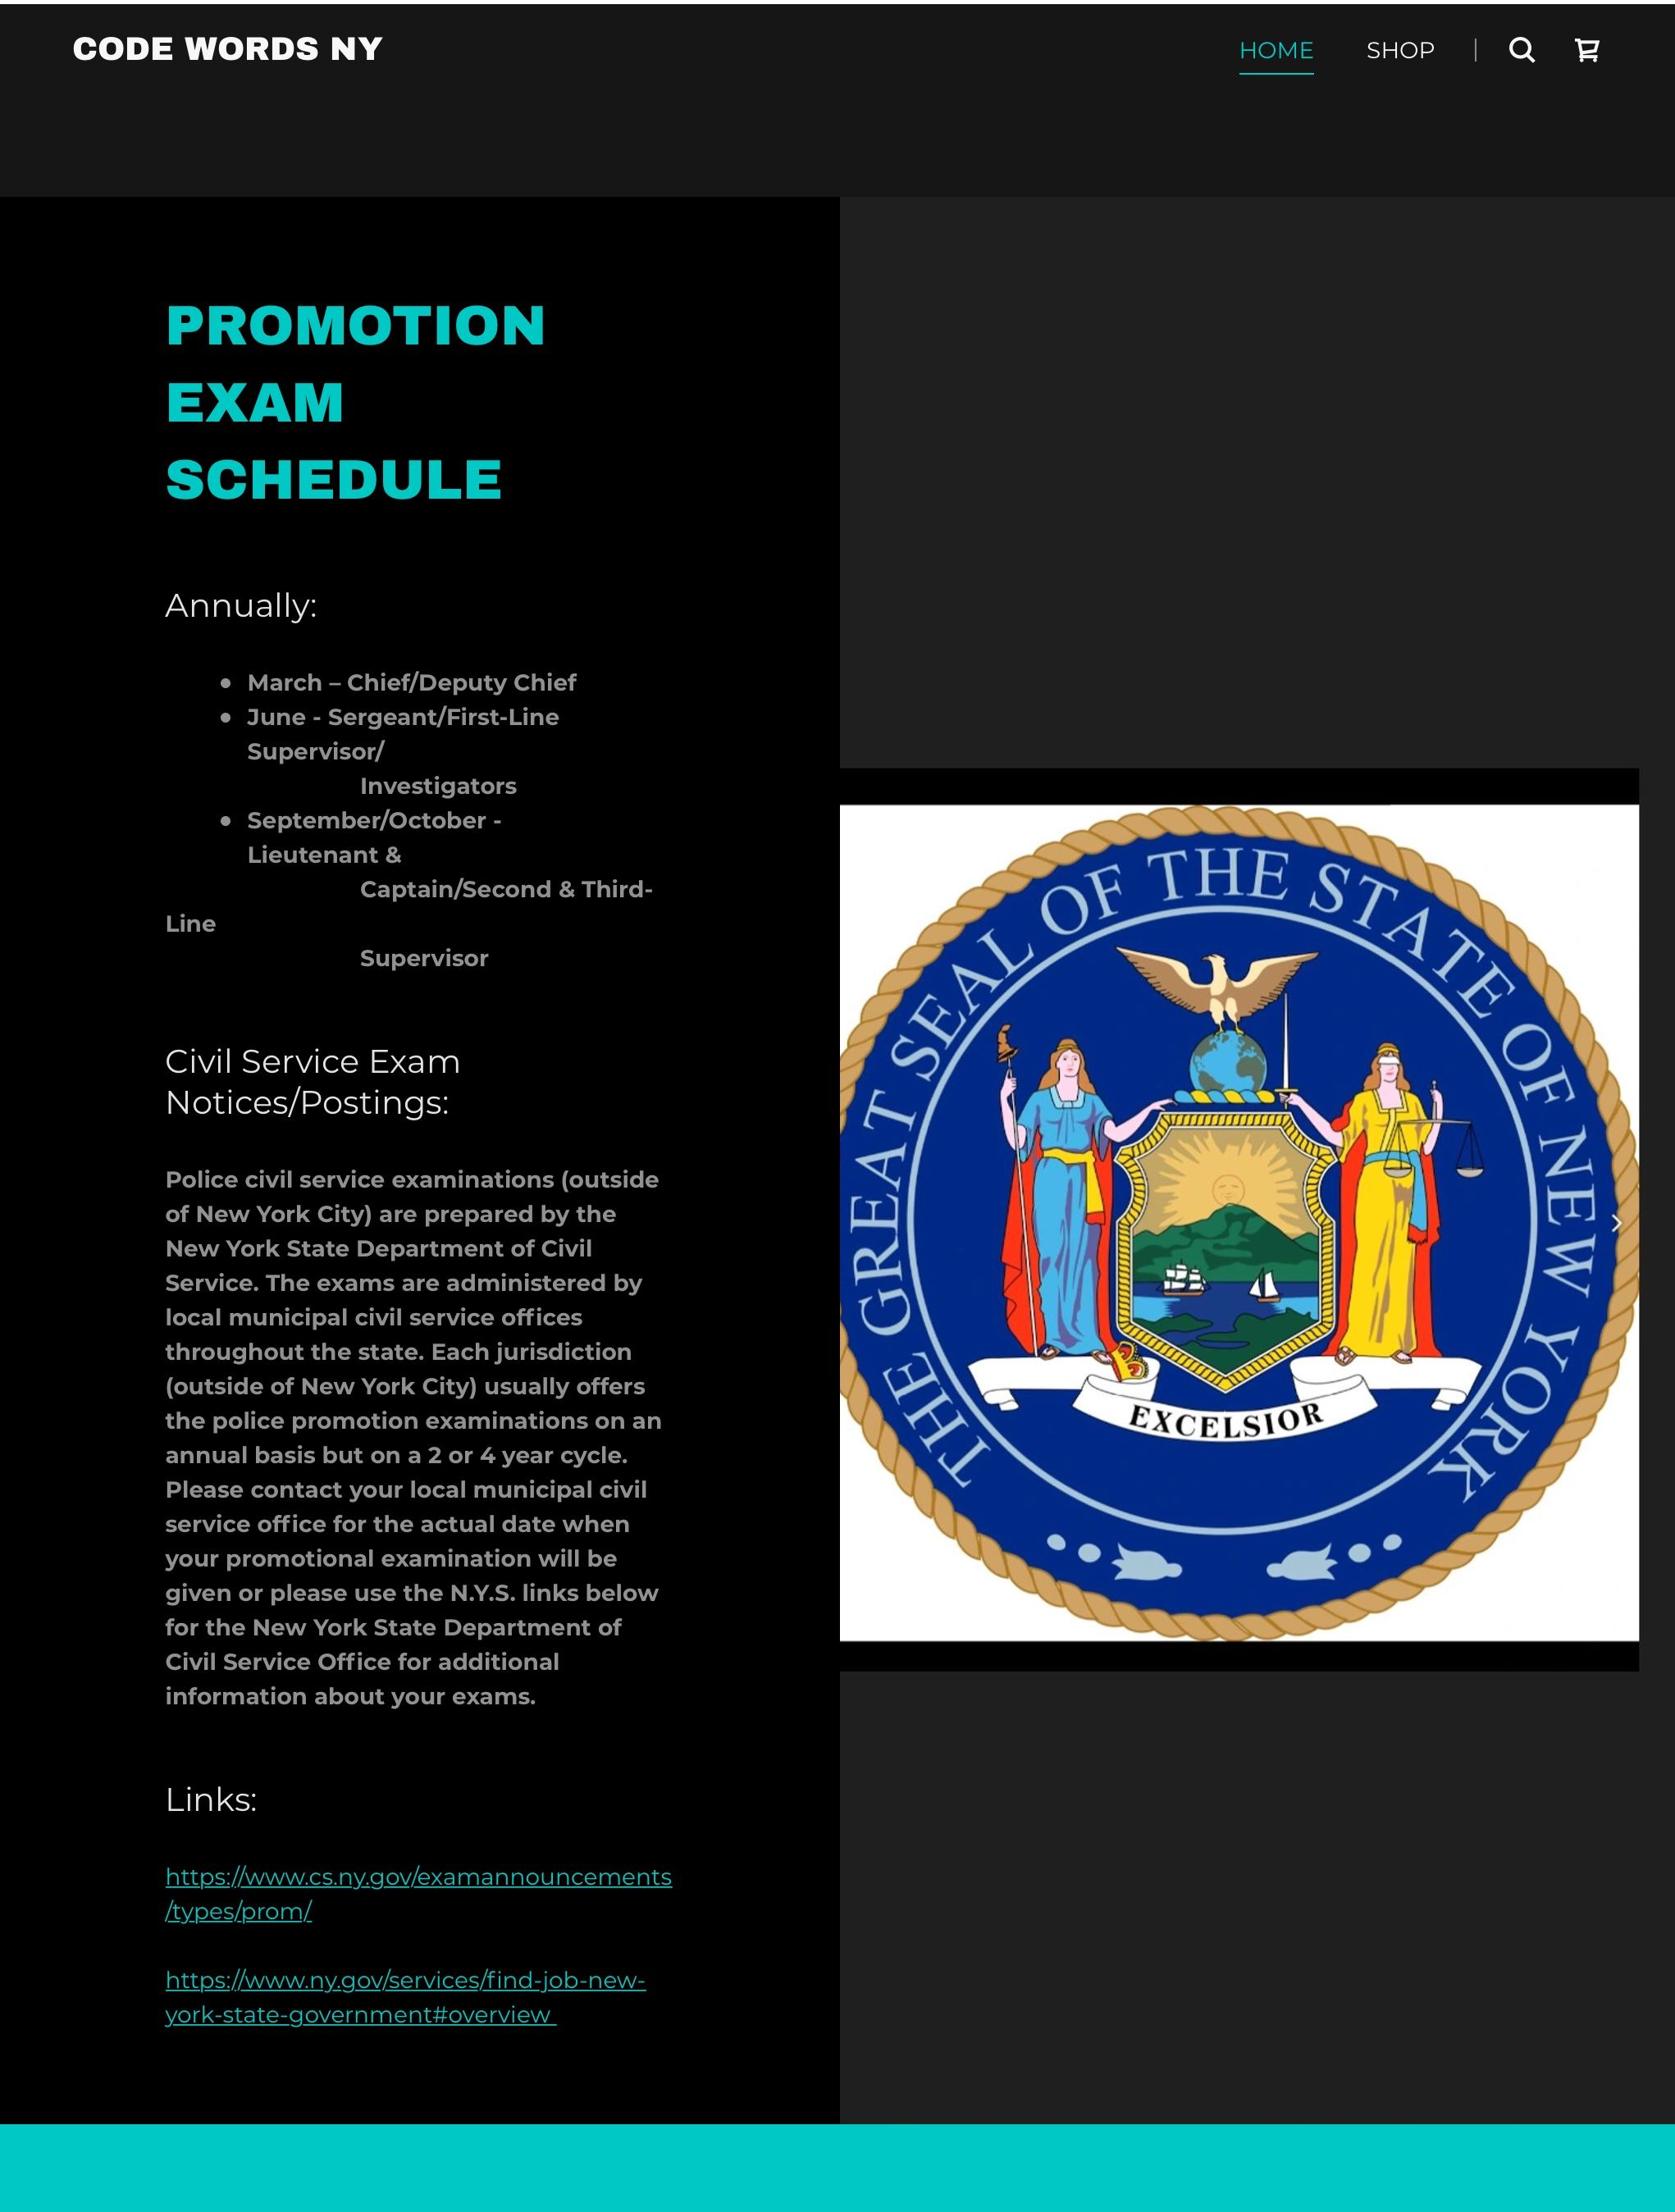 Schedule of Police promotion examinations in New York State